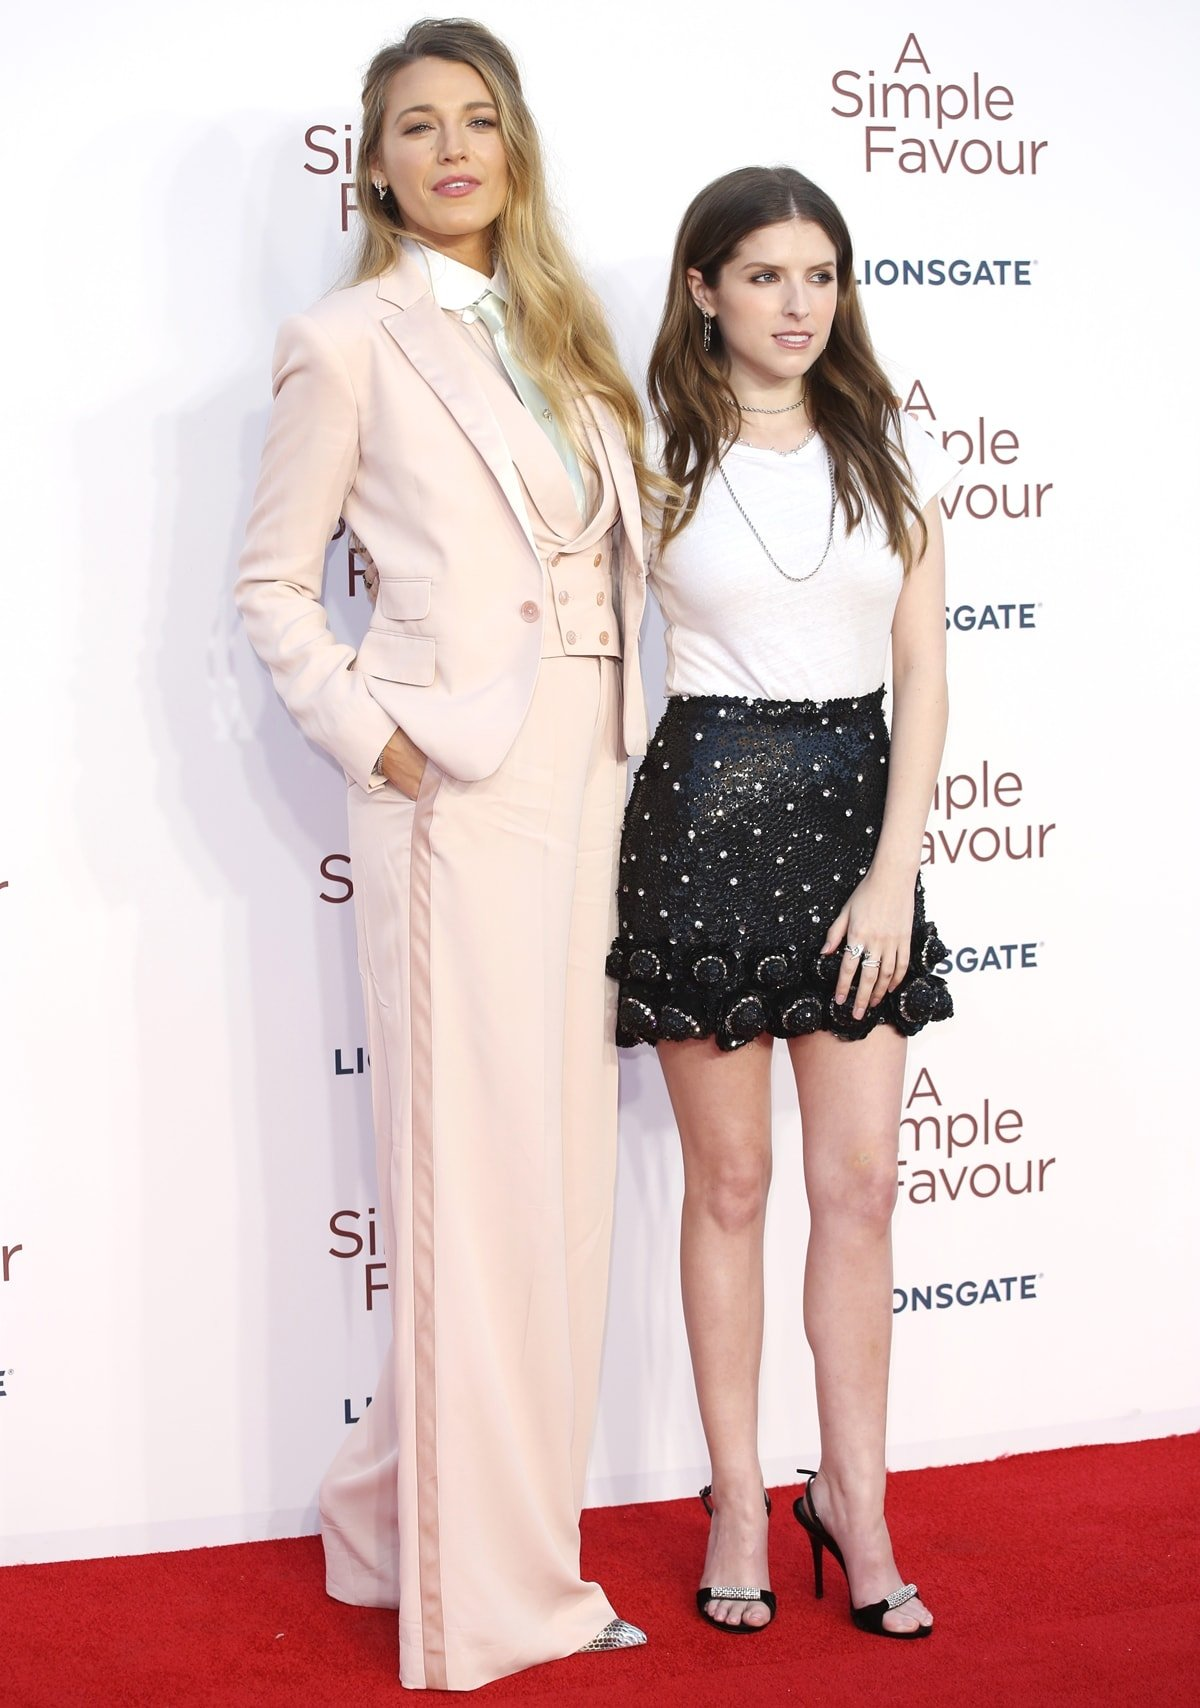 Anna Kendrick (R) and Blake Lively attend the UK premiere of 'A Simple Favour'